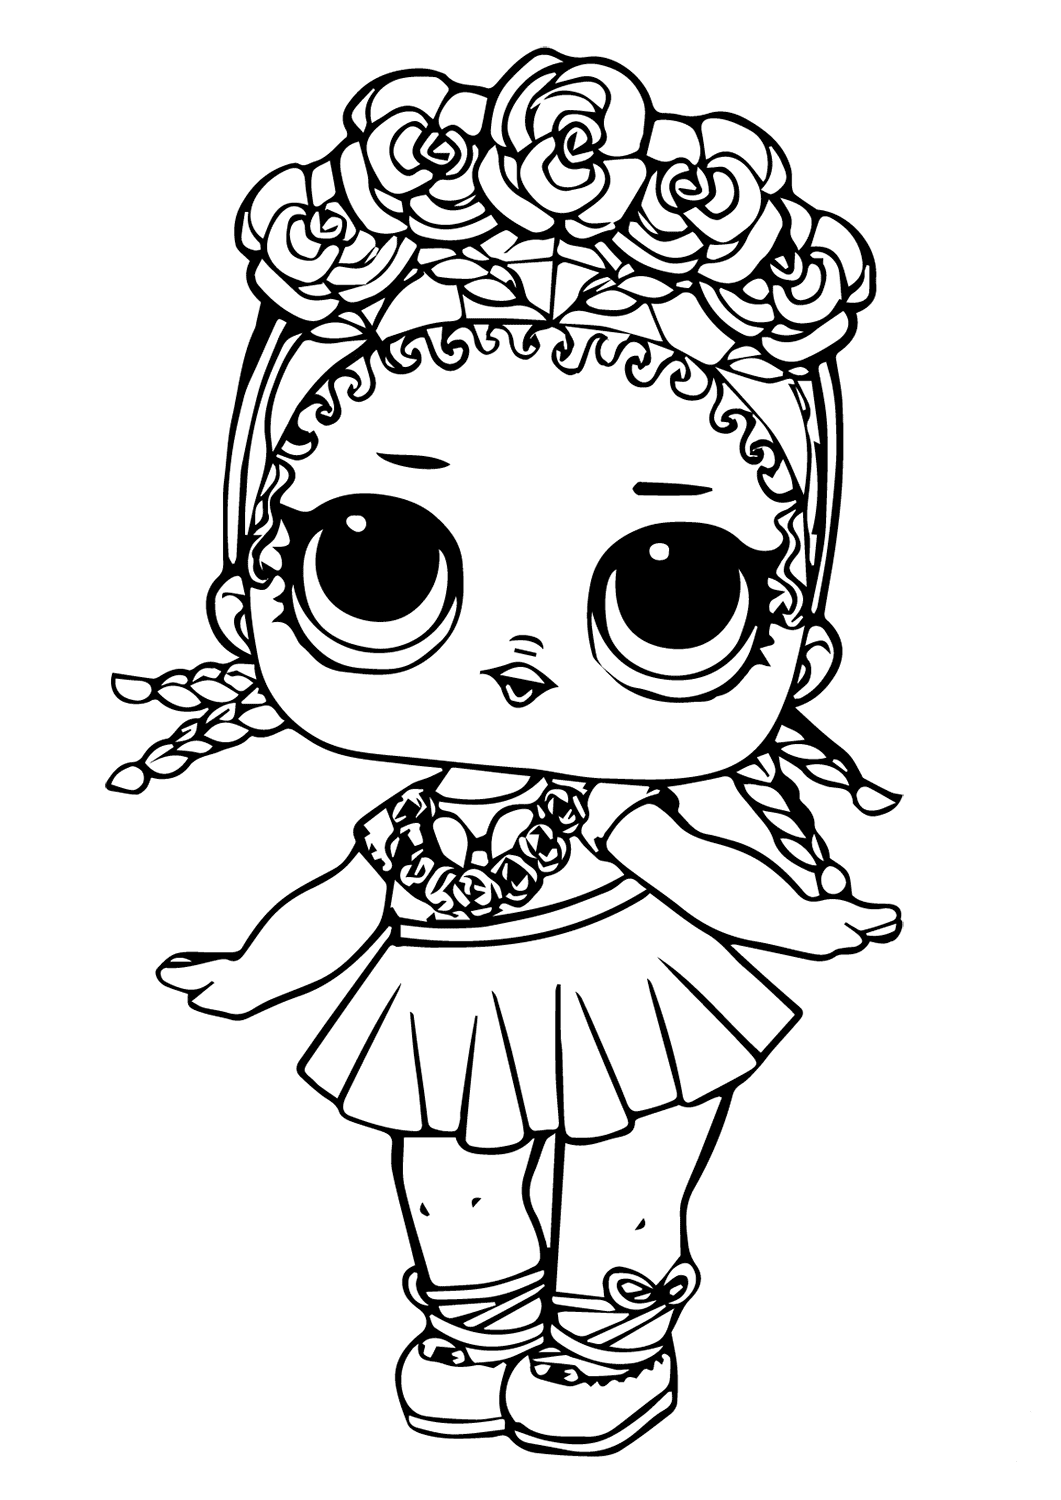 LOL Surprise Doll Coloring Sheets Coconut QT